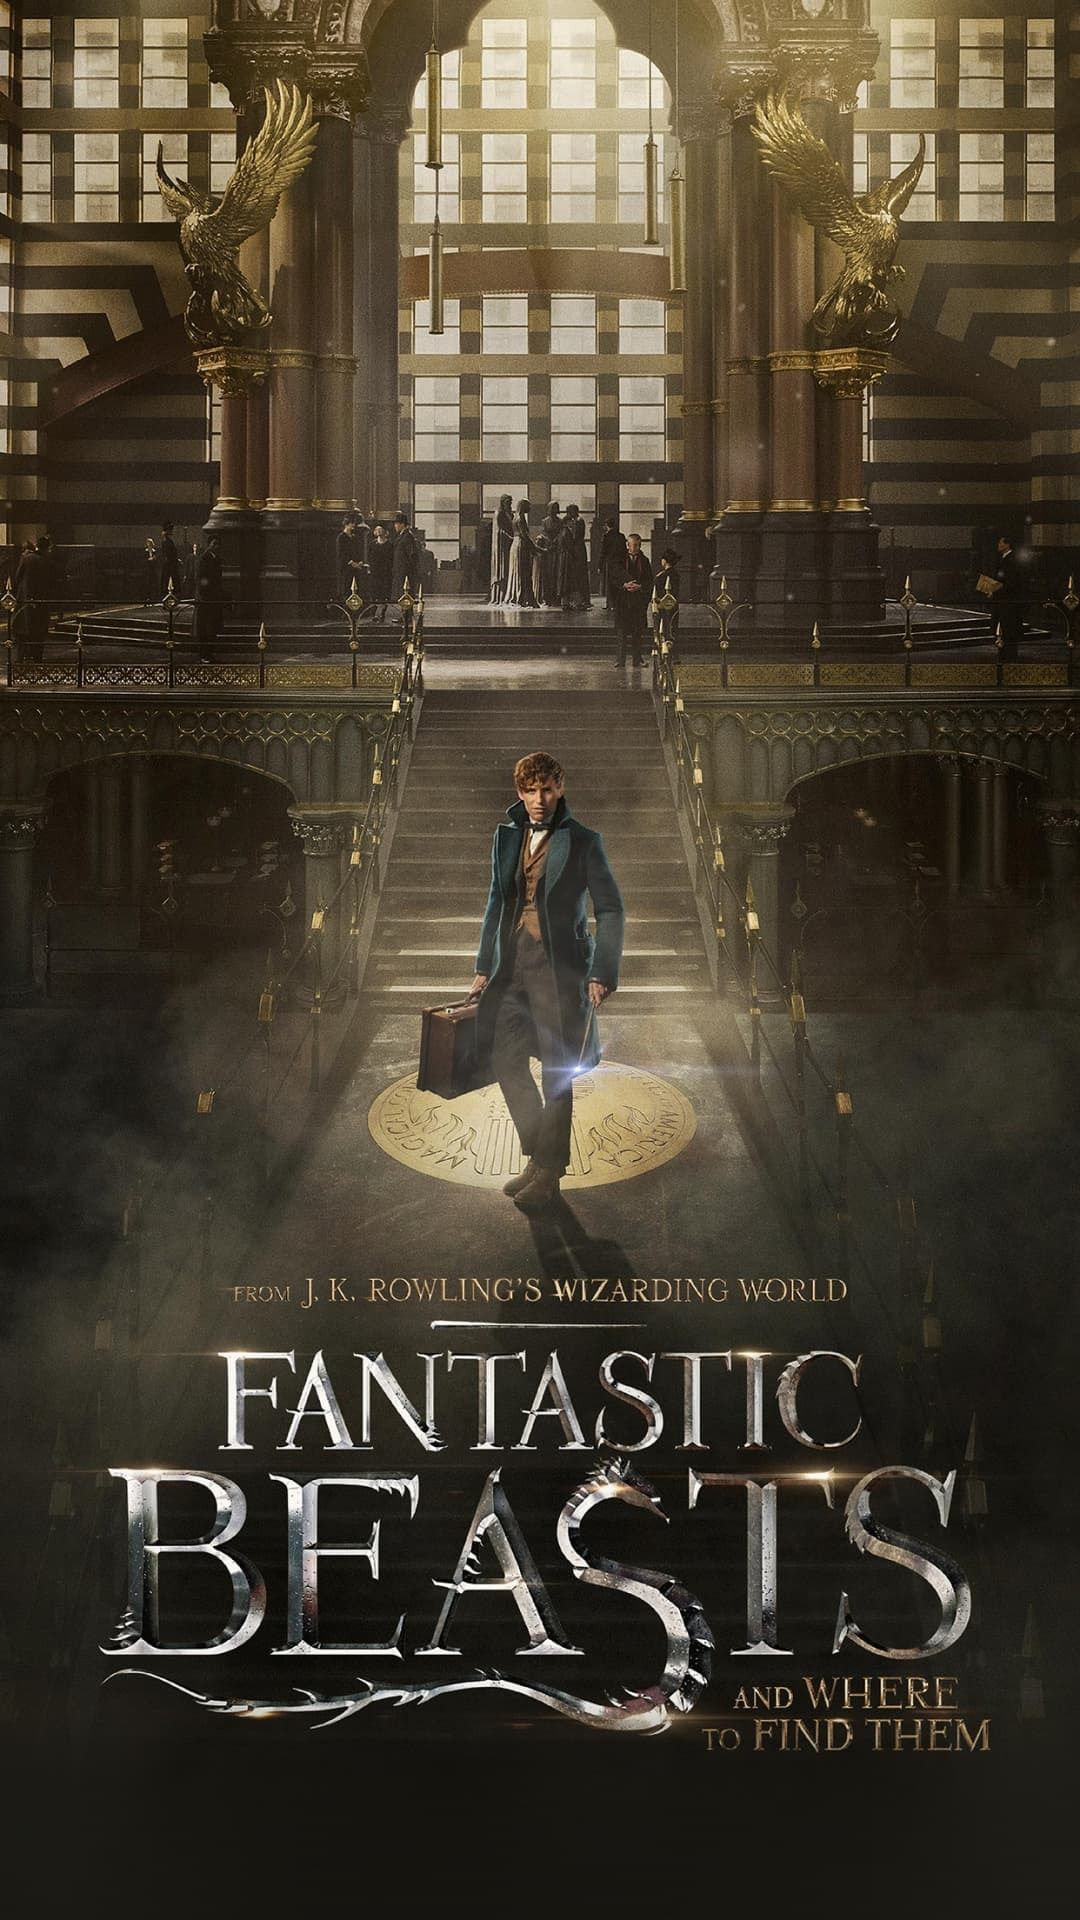 Pin by Zach Lesher on iPhone Wallpaper Fantastic beasts